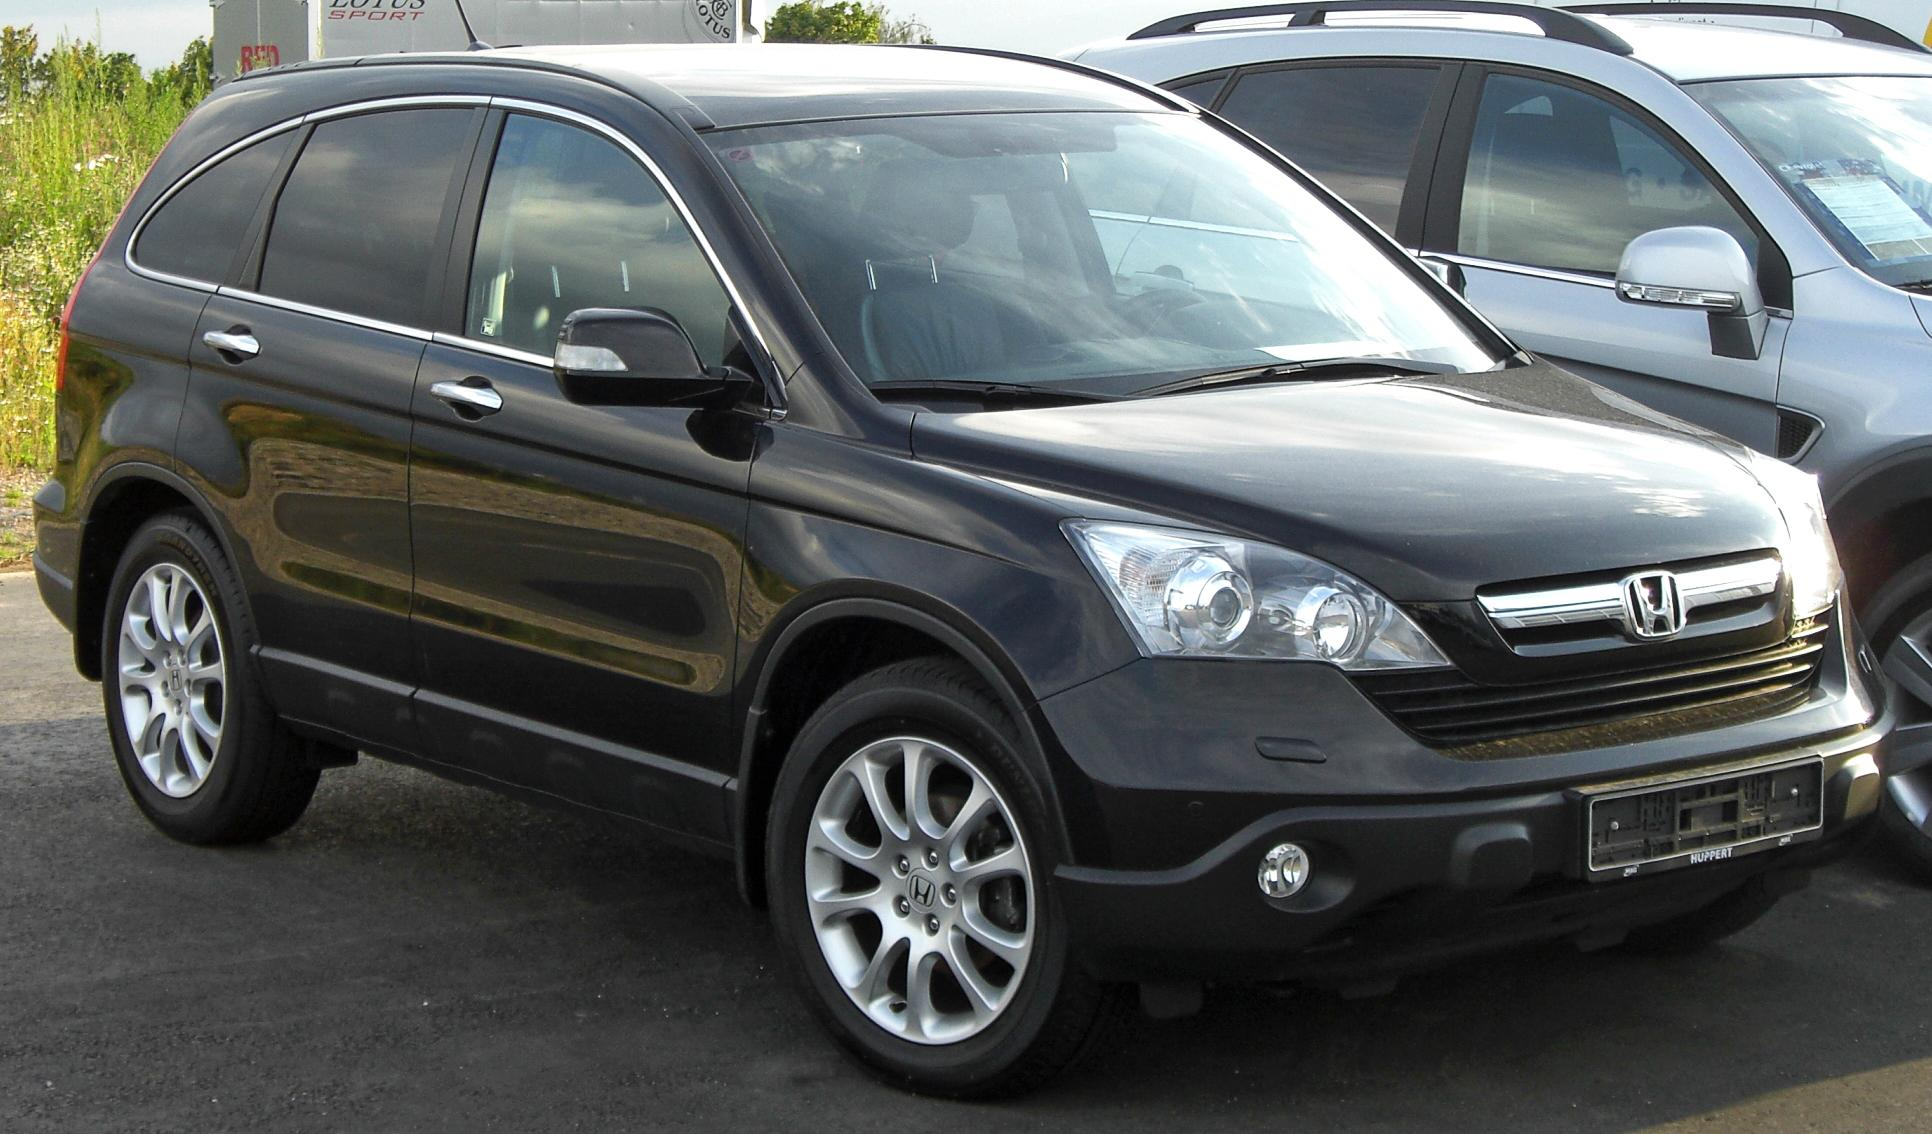 Honda CR-V 2010 photo - 3